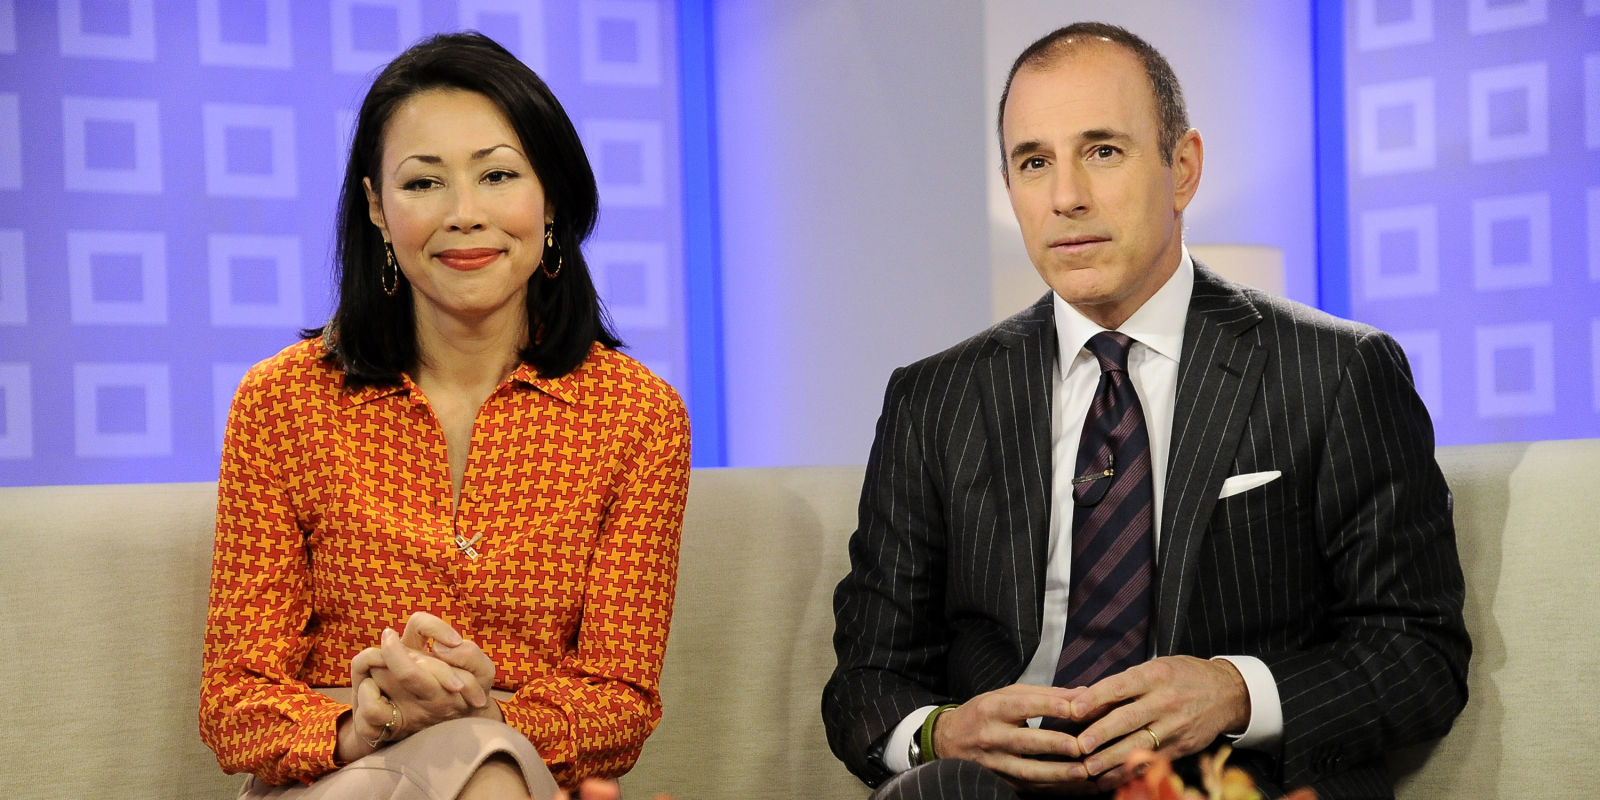 Ann Curry Opens Up About Leaving the Today Show for the Very First Time